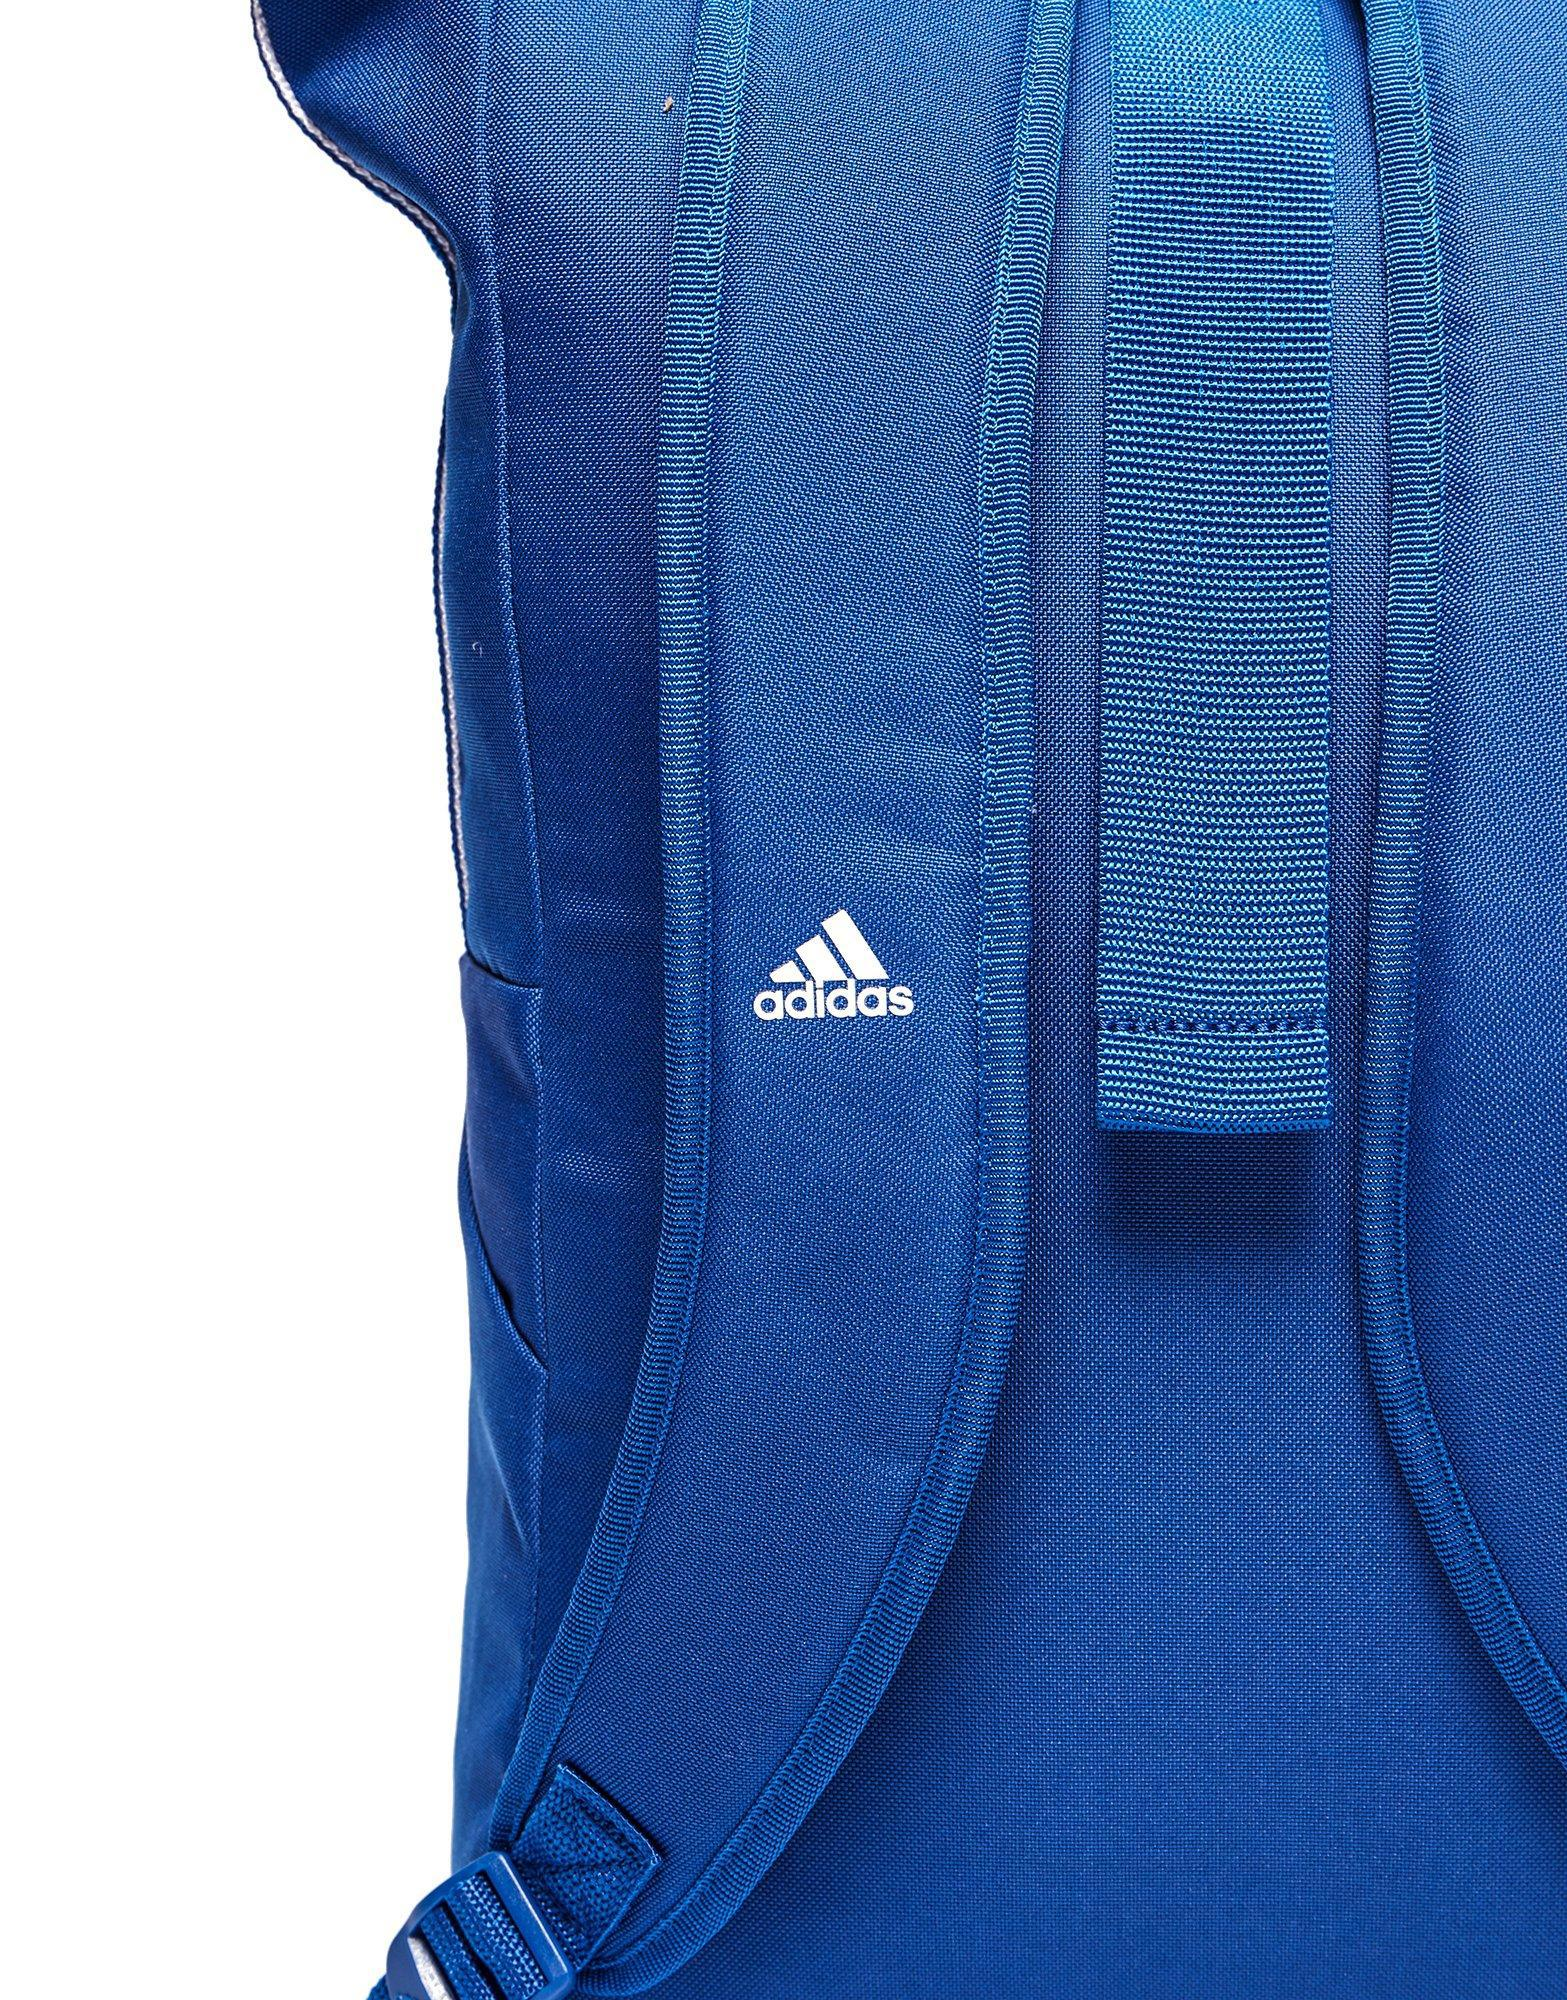 adidas Synthetic Athletic Backpack in Navy (Blue)